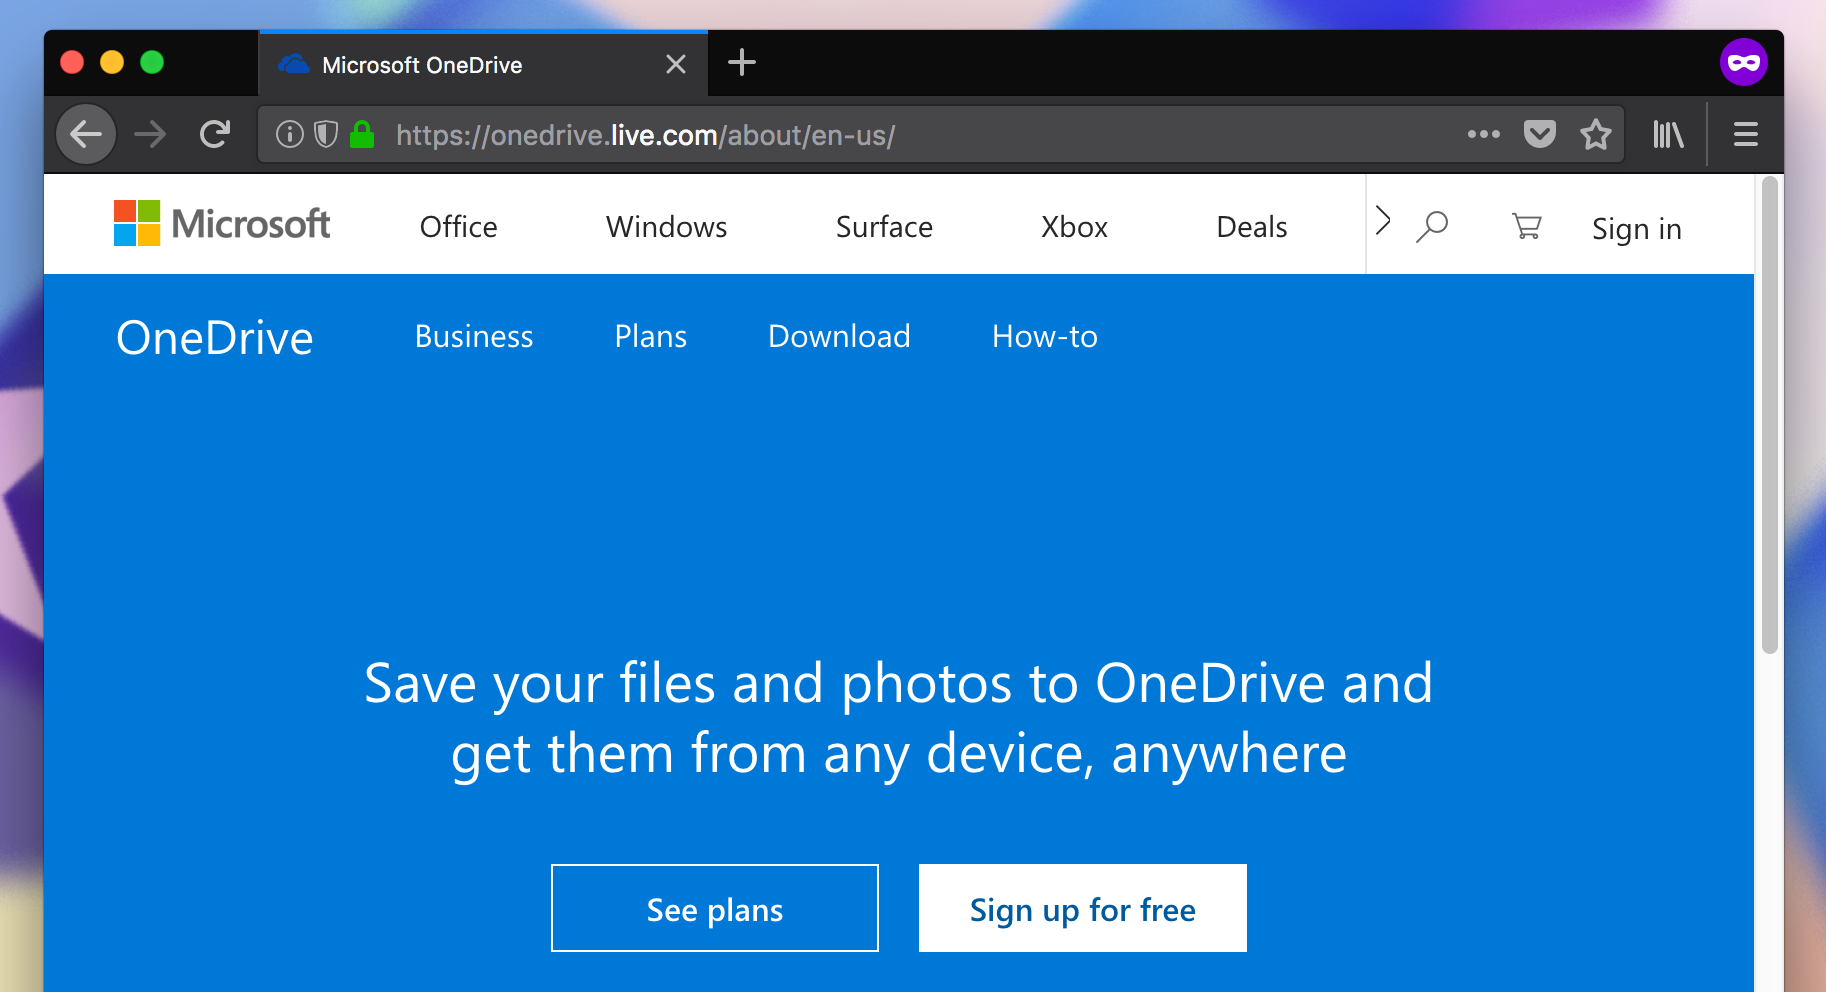 OneDrive dot live dot com landing page showing the sign in button in the upper right